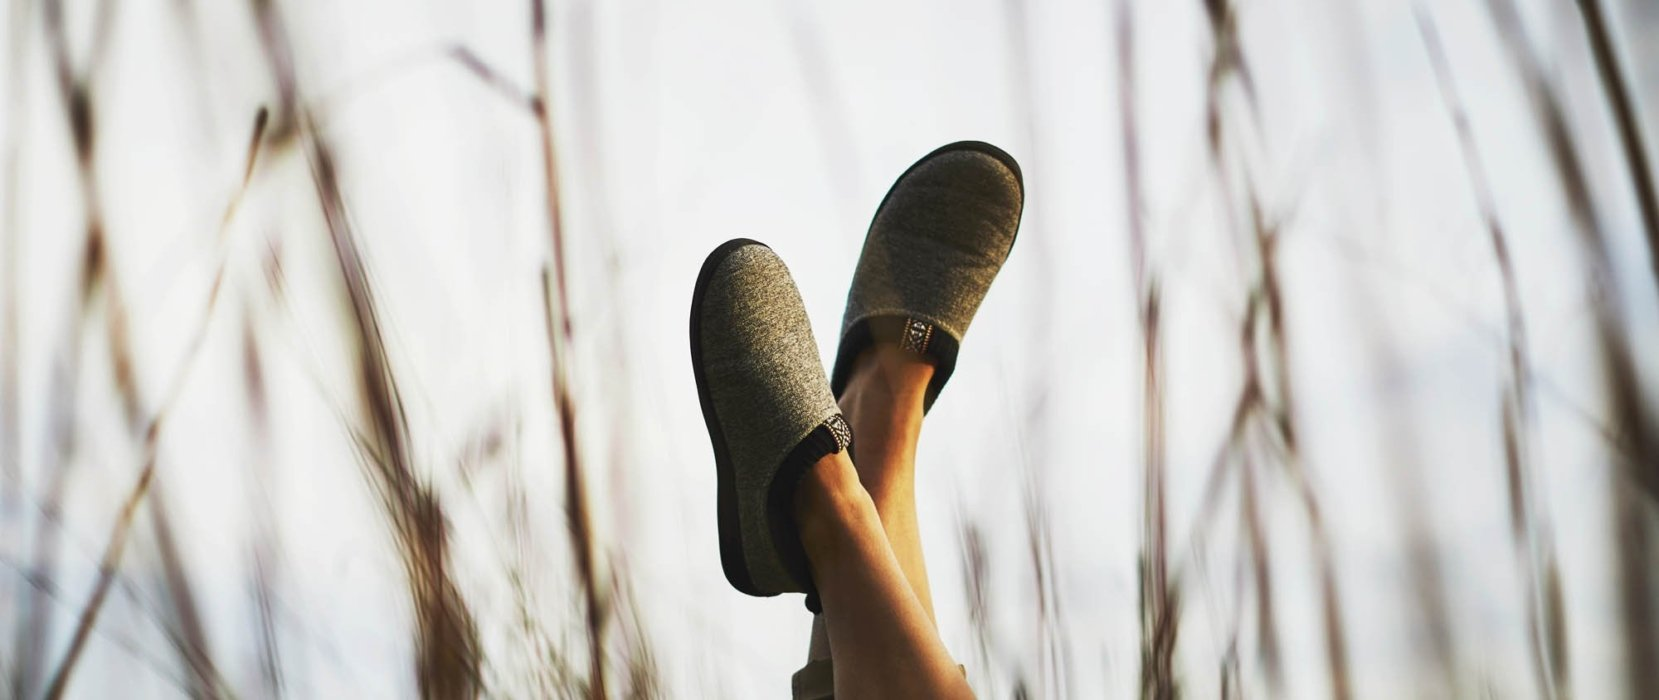 A woman's feet in the air wearing acorn shoes - apparel lifestyle photography